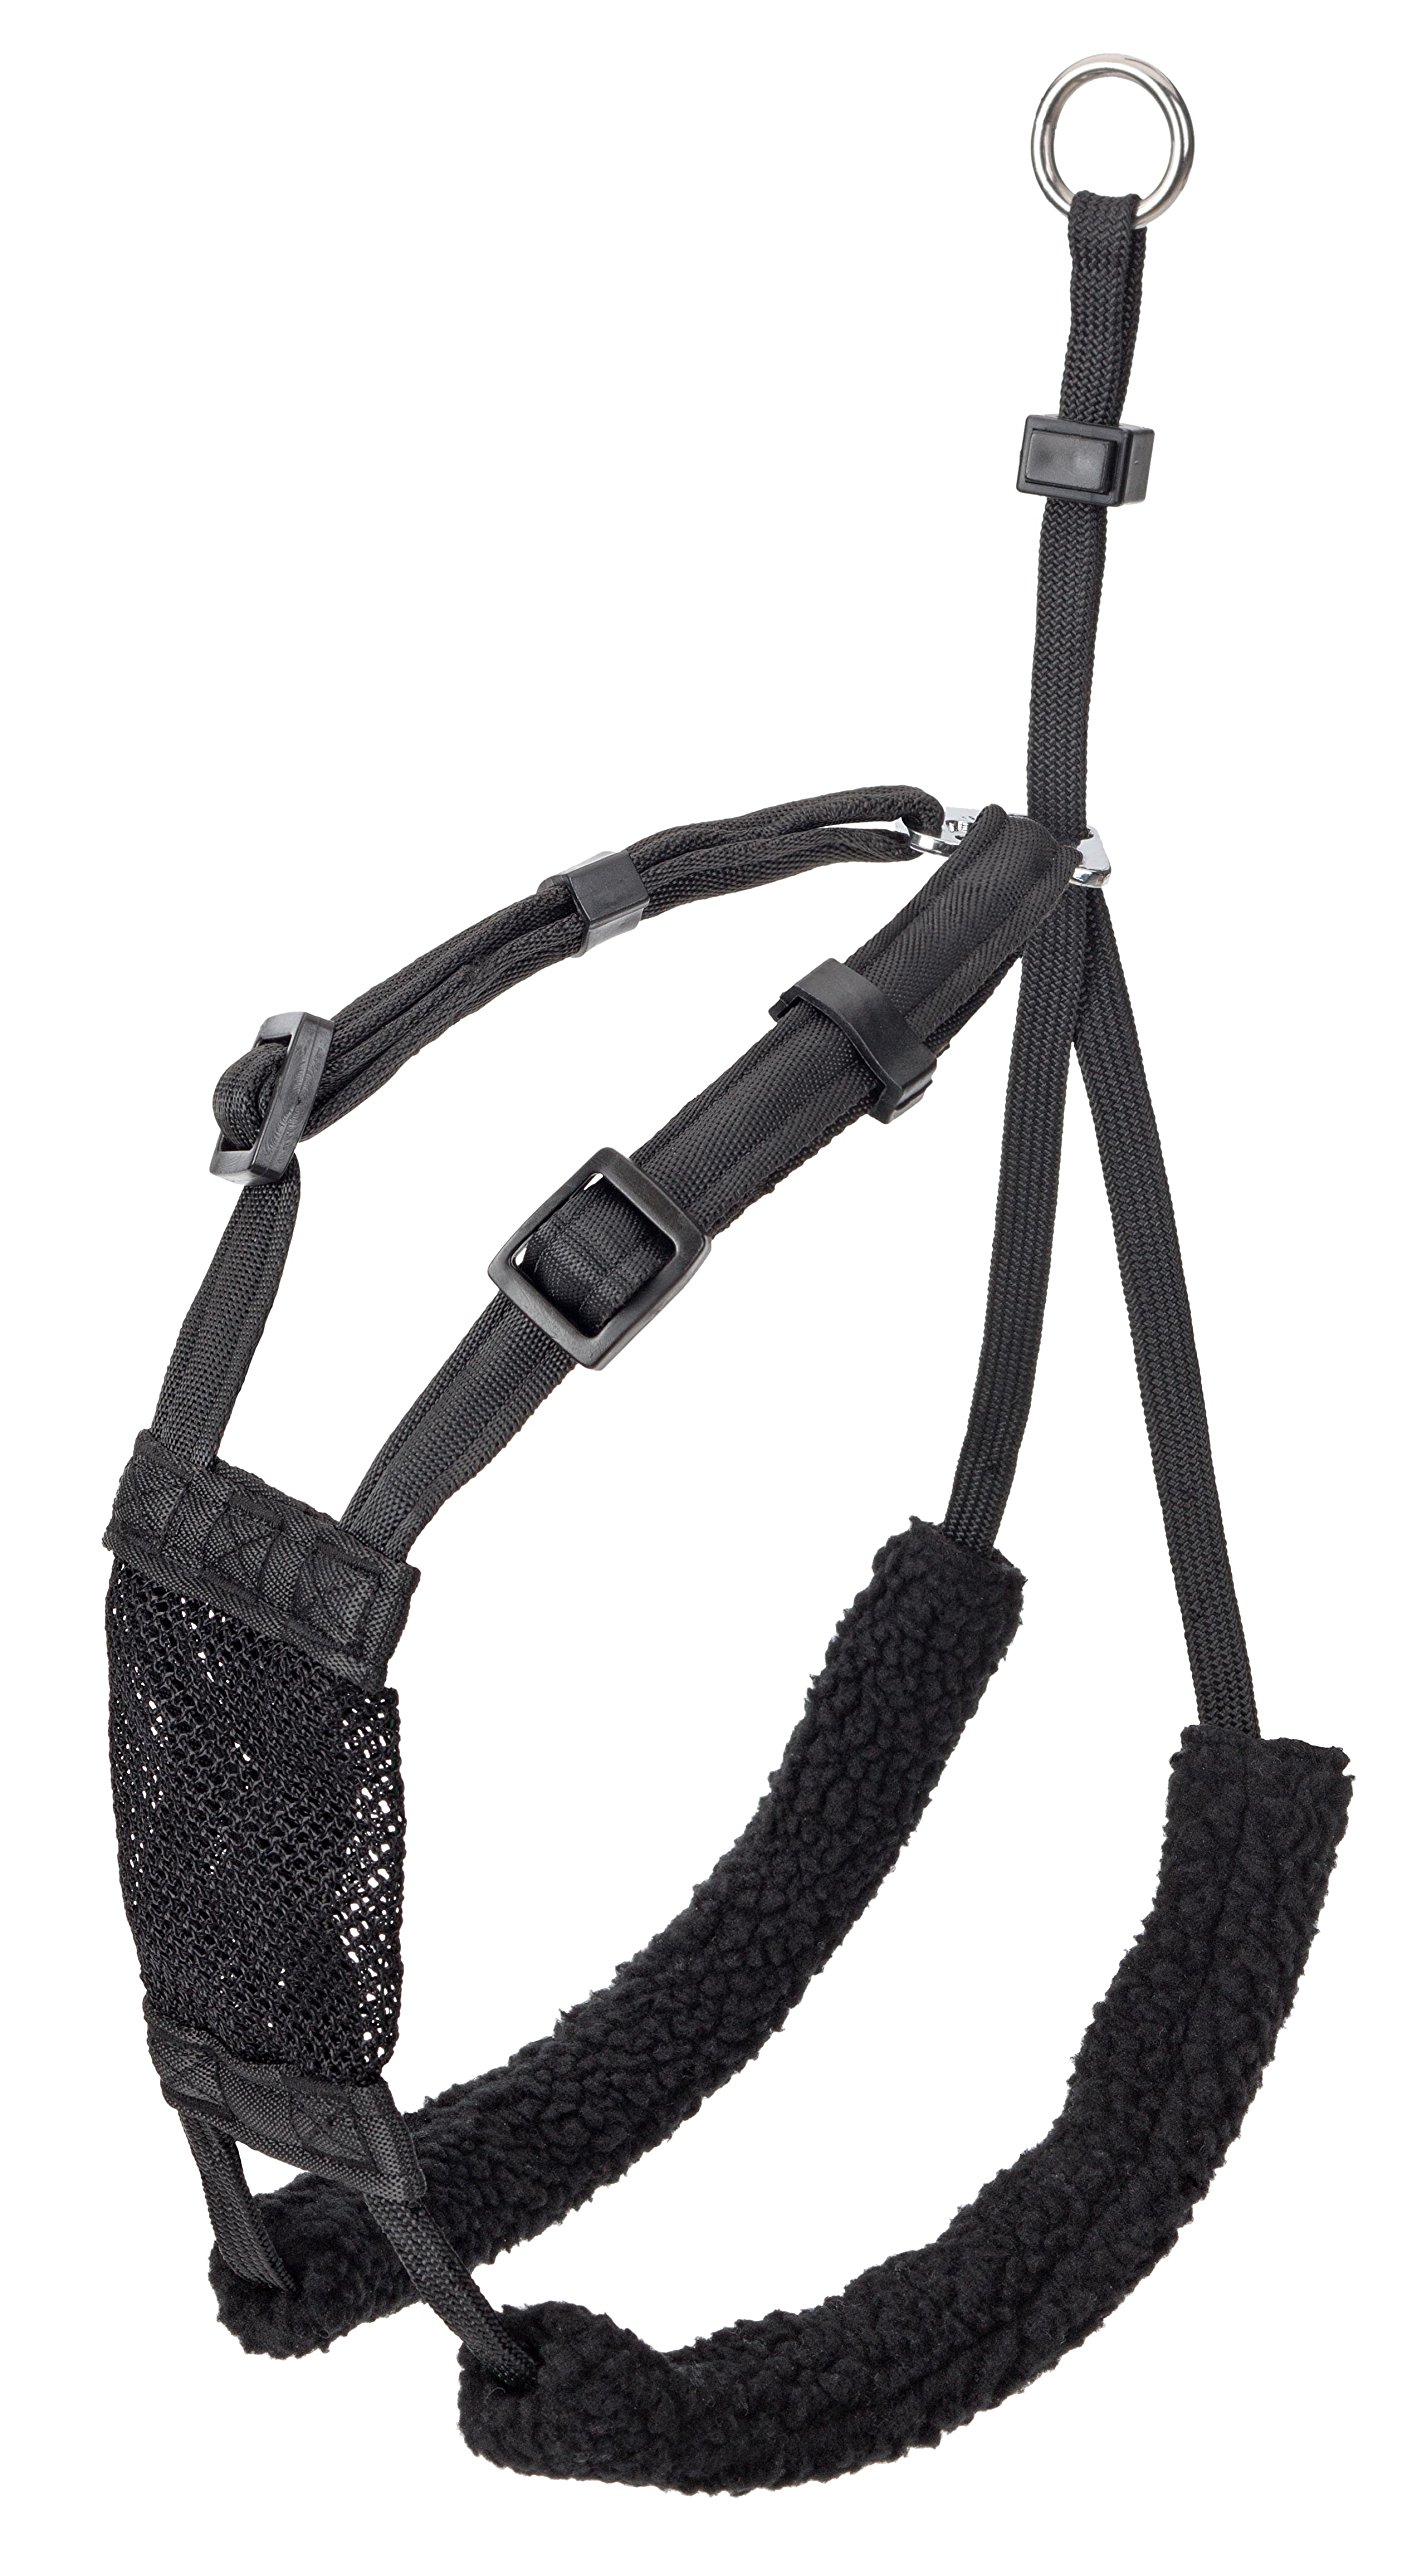 Company Of Animals Non-pull Harness, Black Medium by The Company of Animals (Image #1)